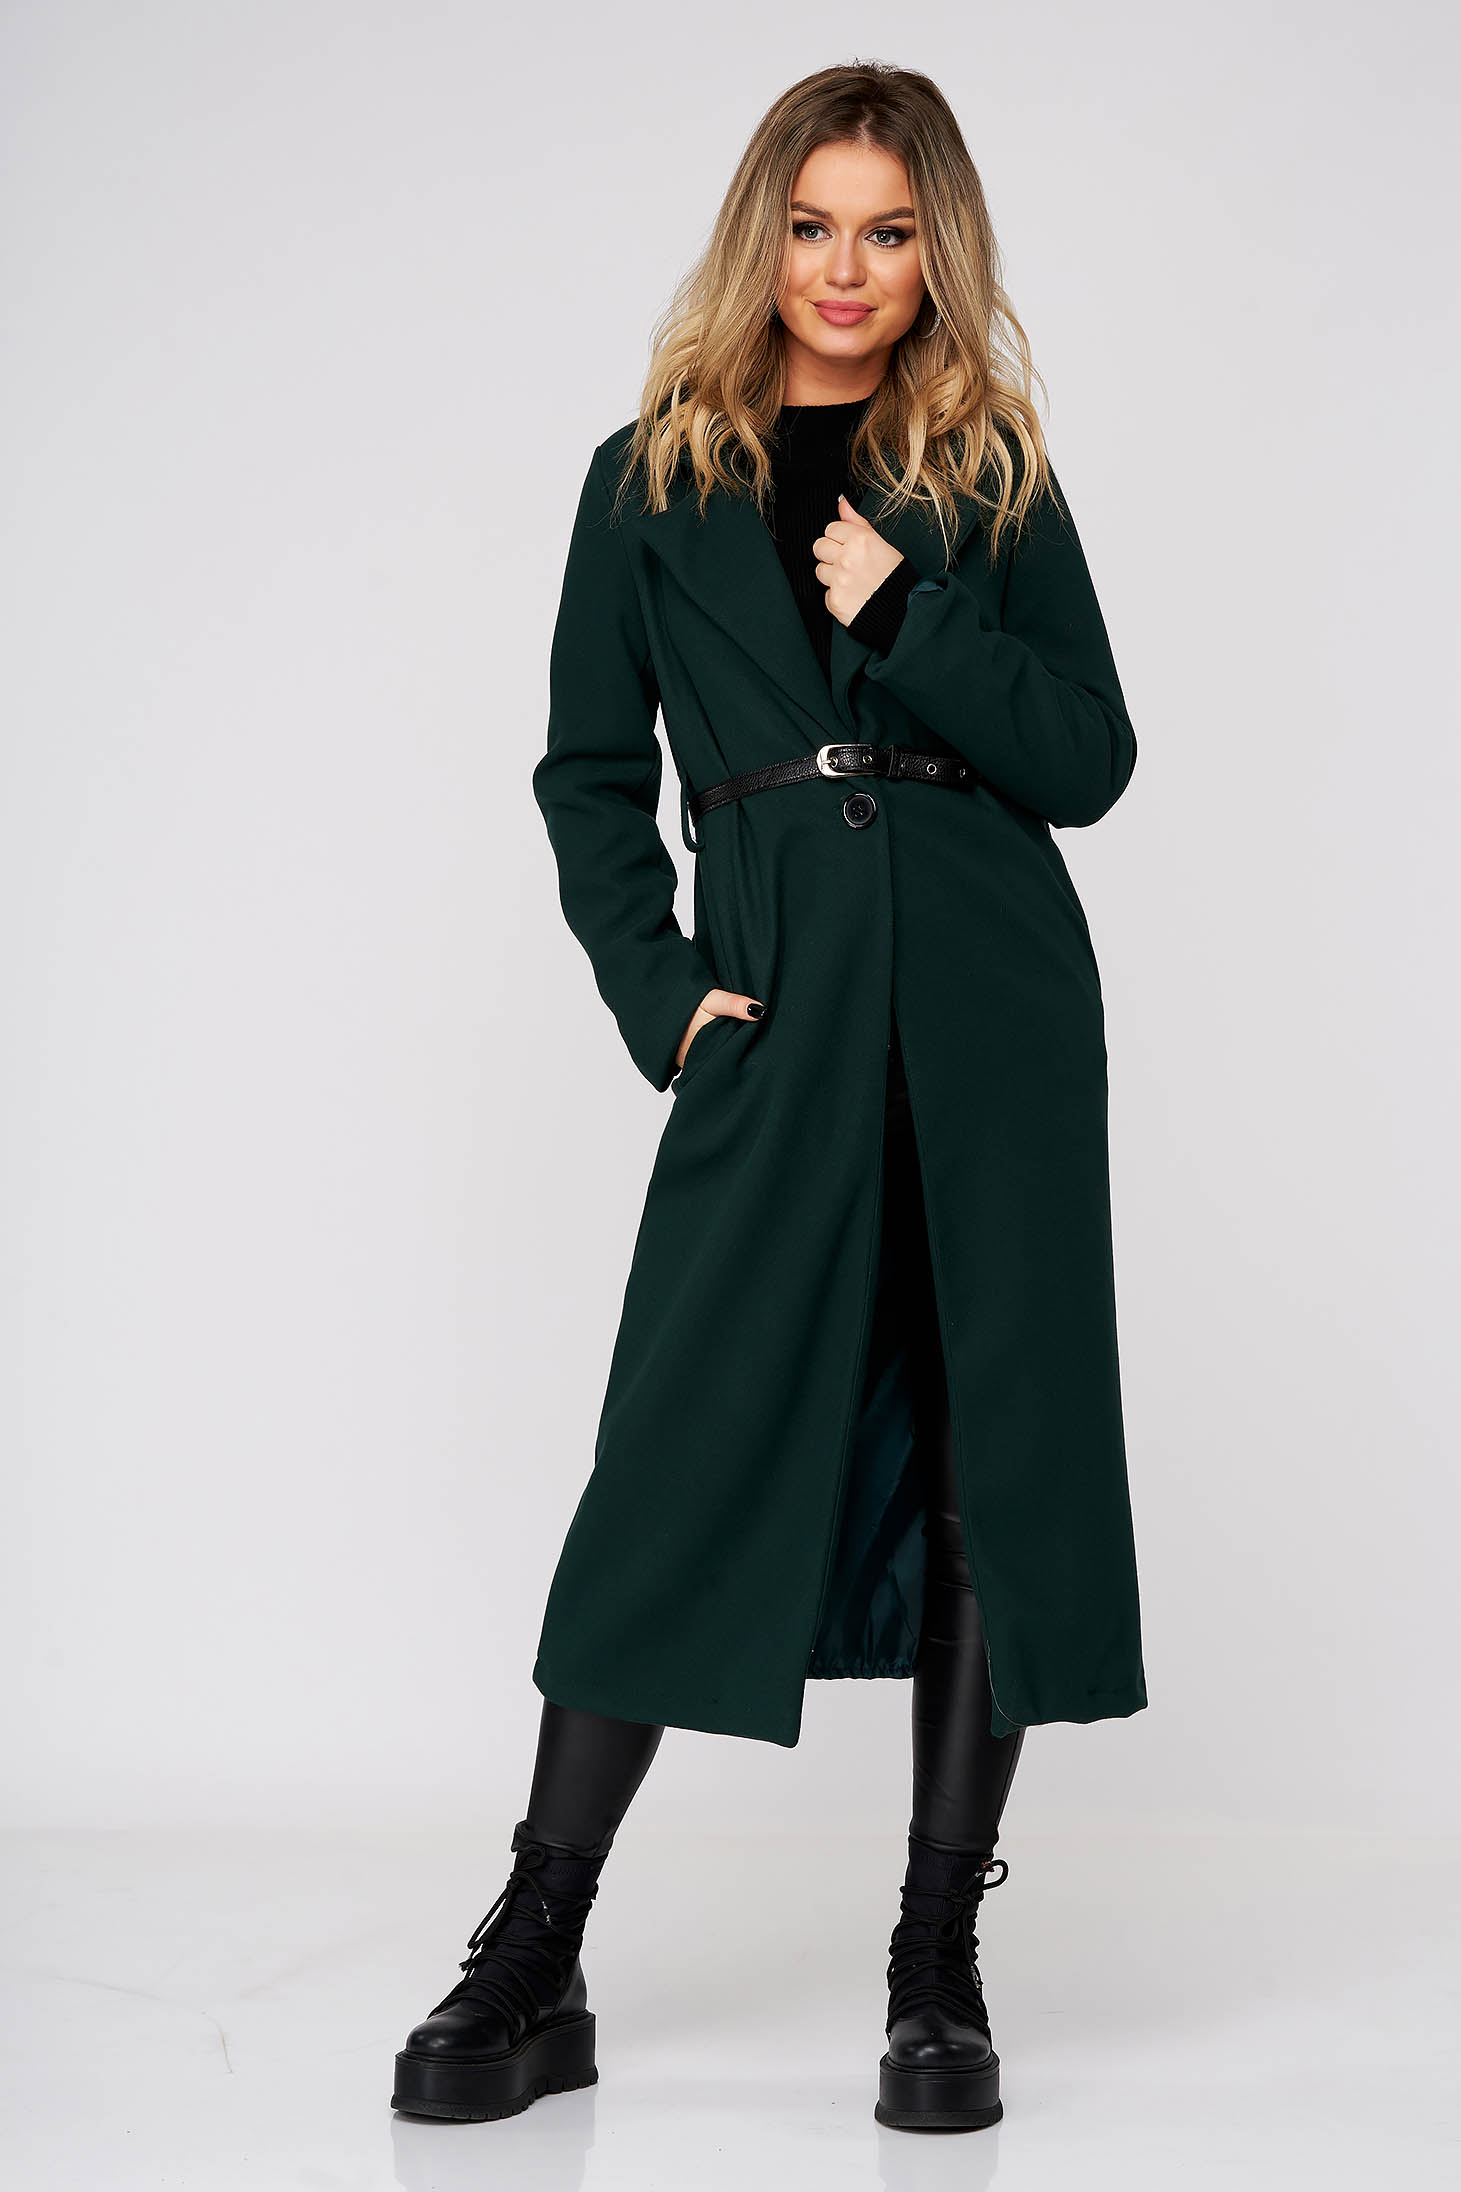 Green coat casual long straight cloth with pockets accessorized with belt